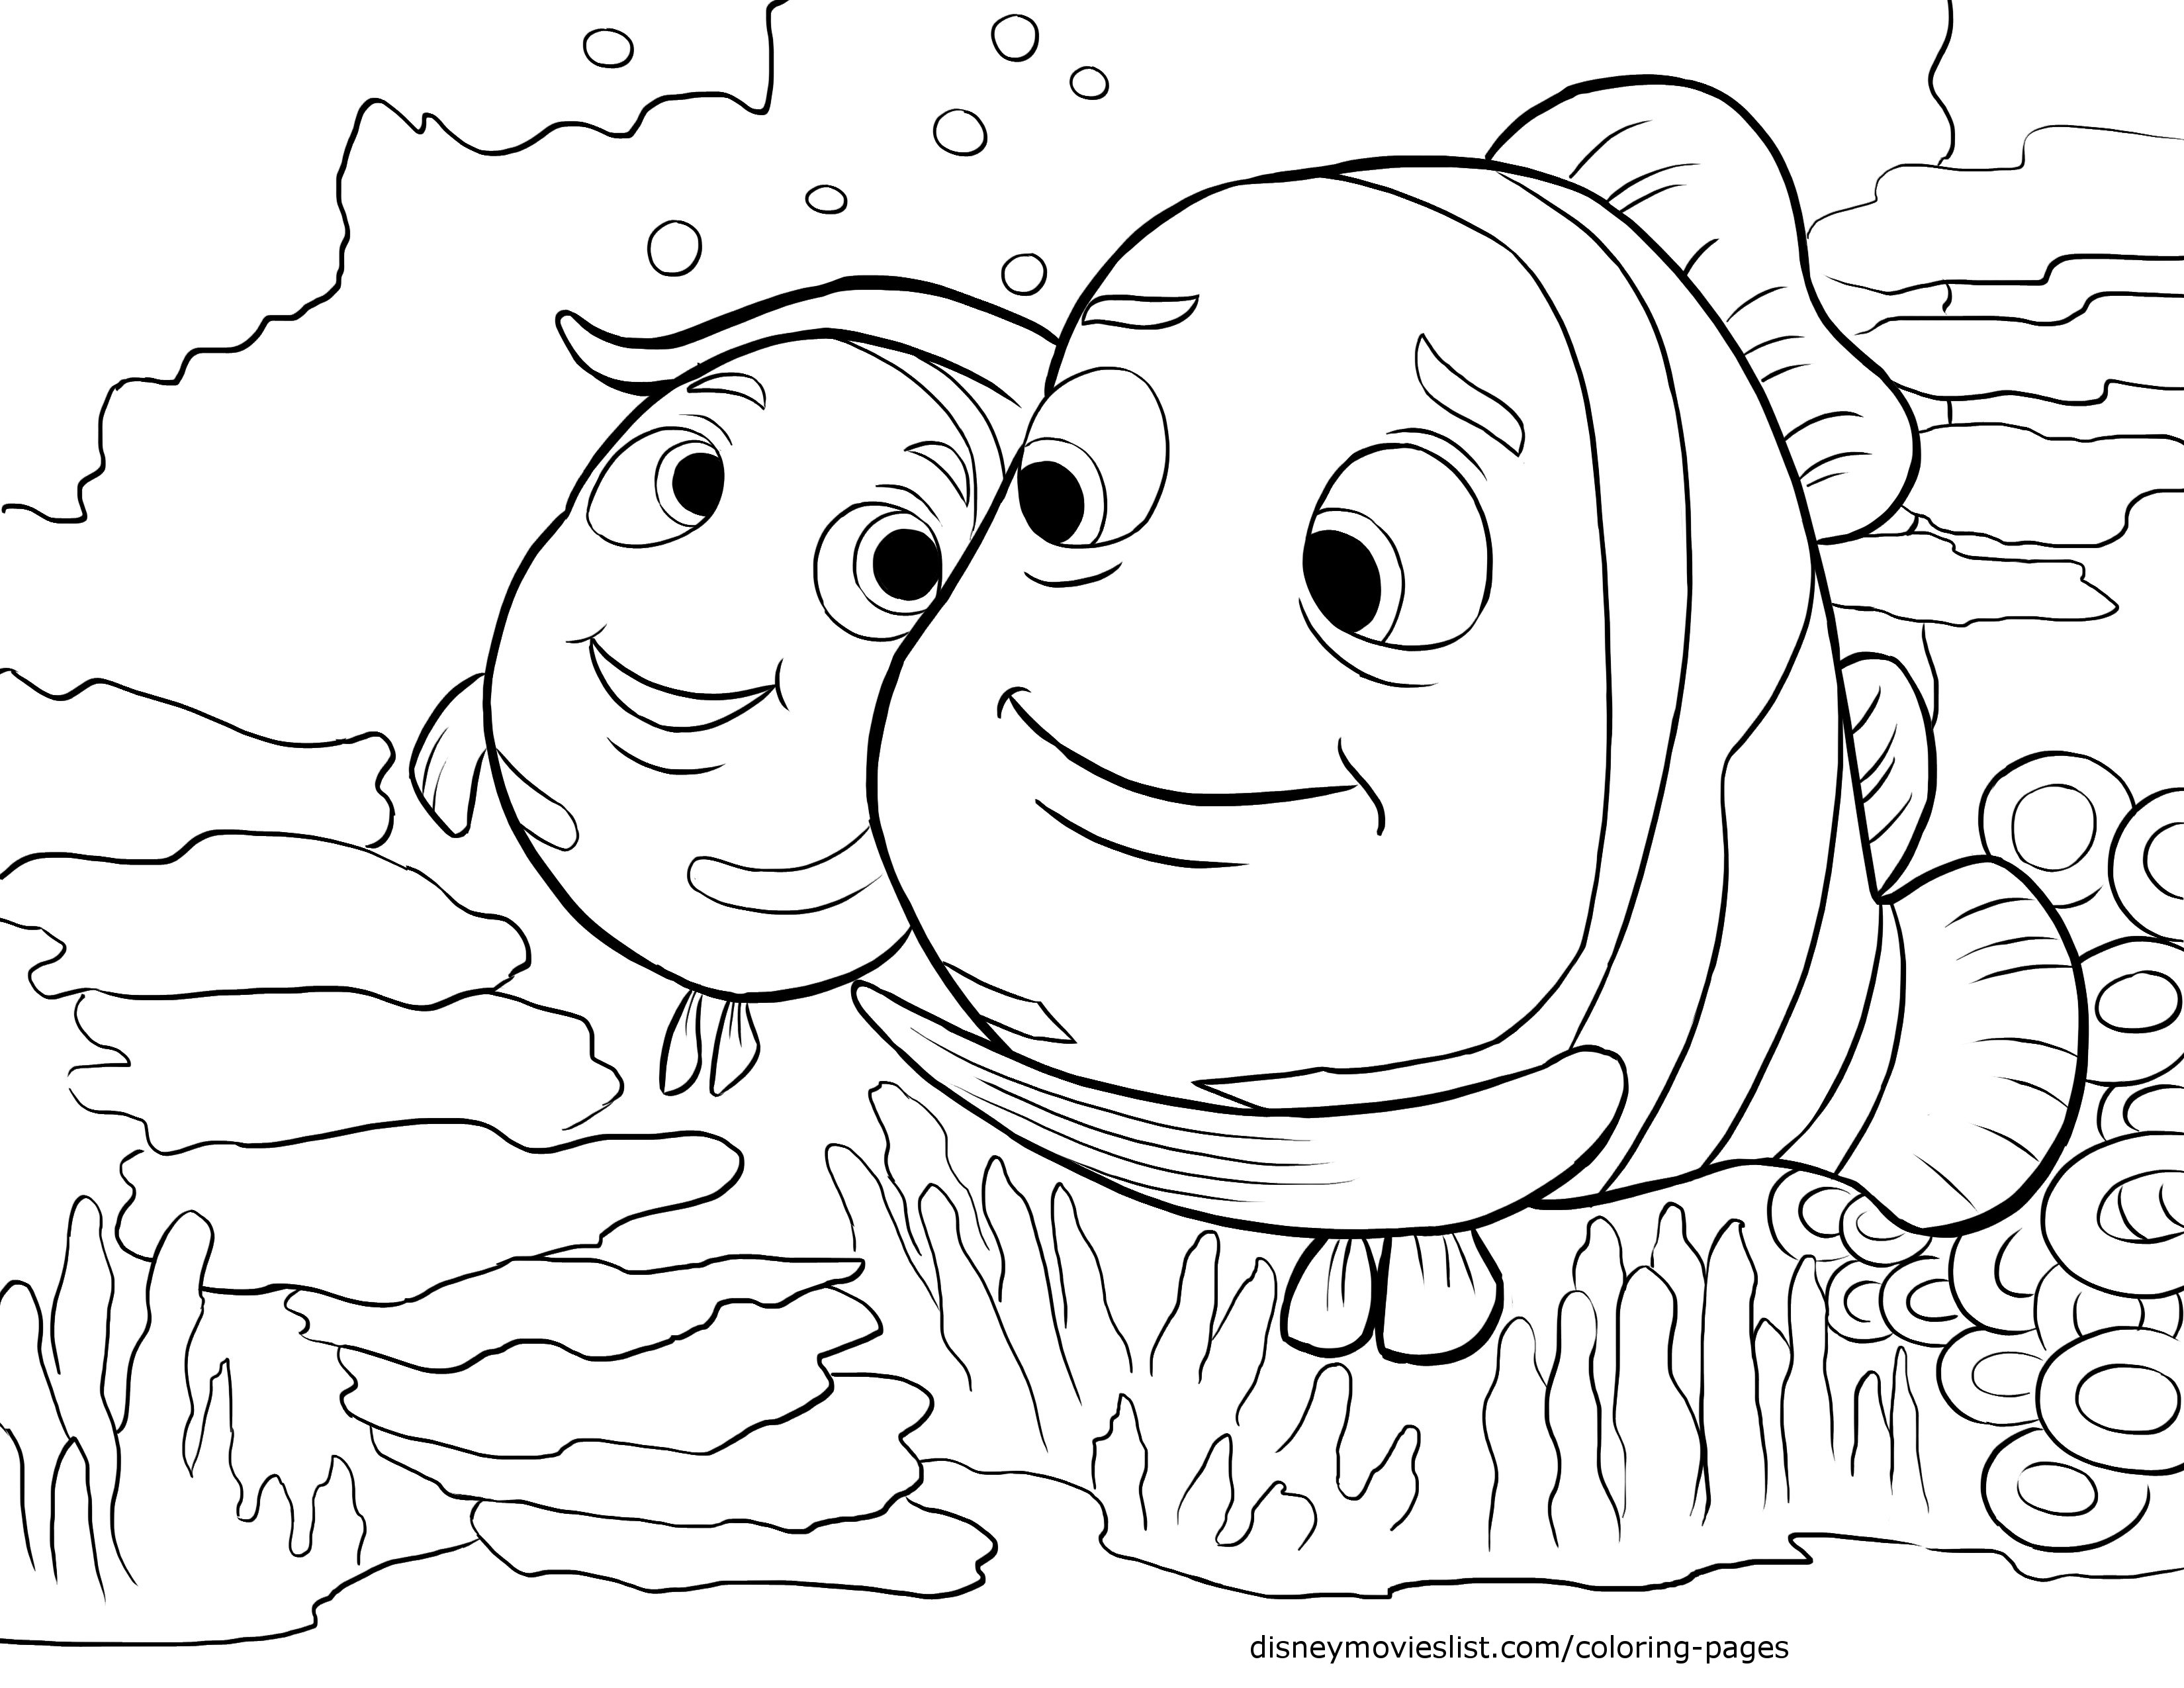 Awesome Brother Bear Koda Coloring Pages Component - Printable ...